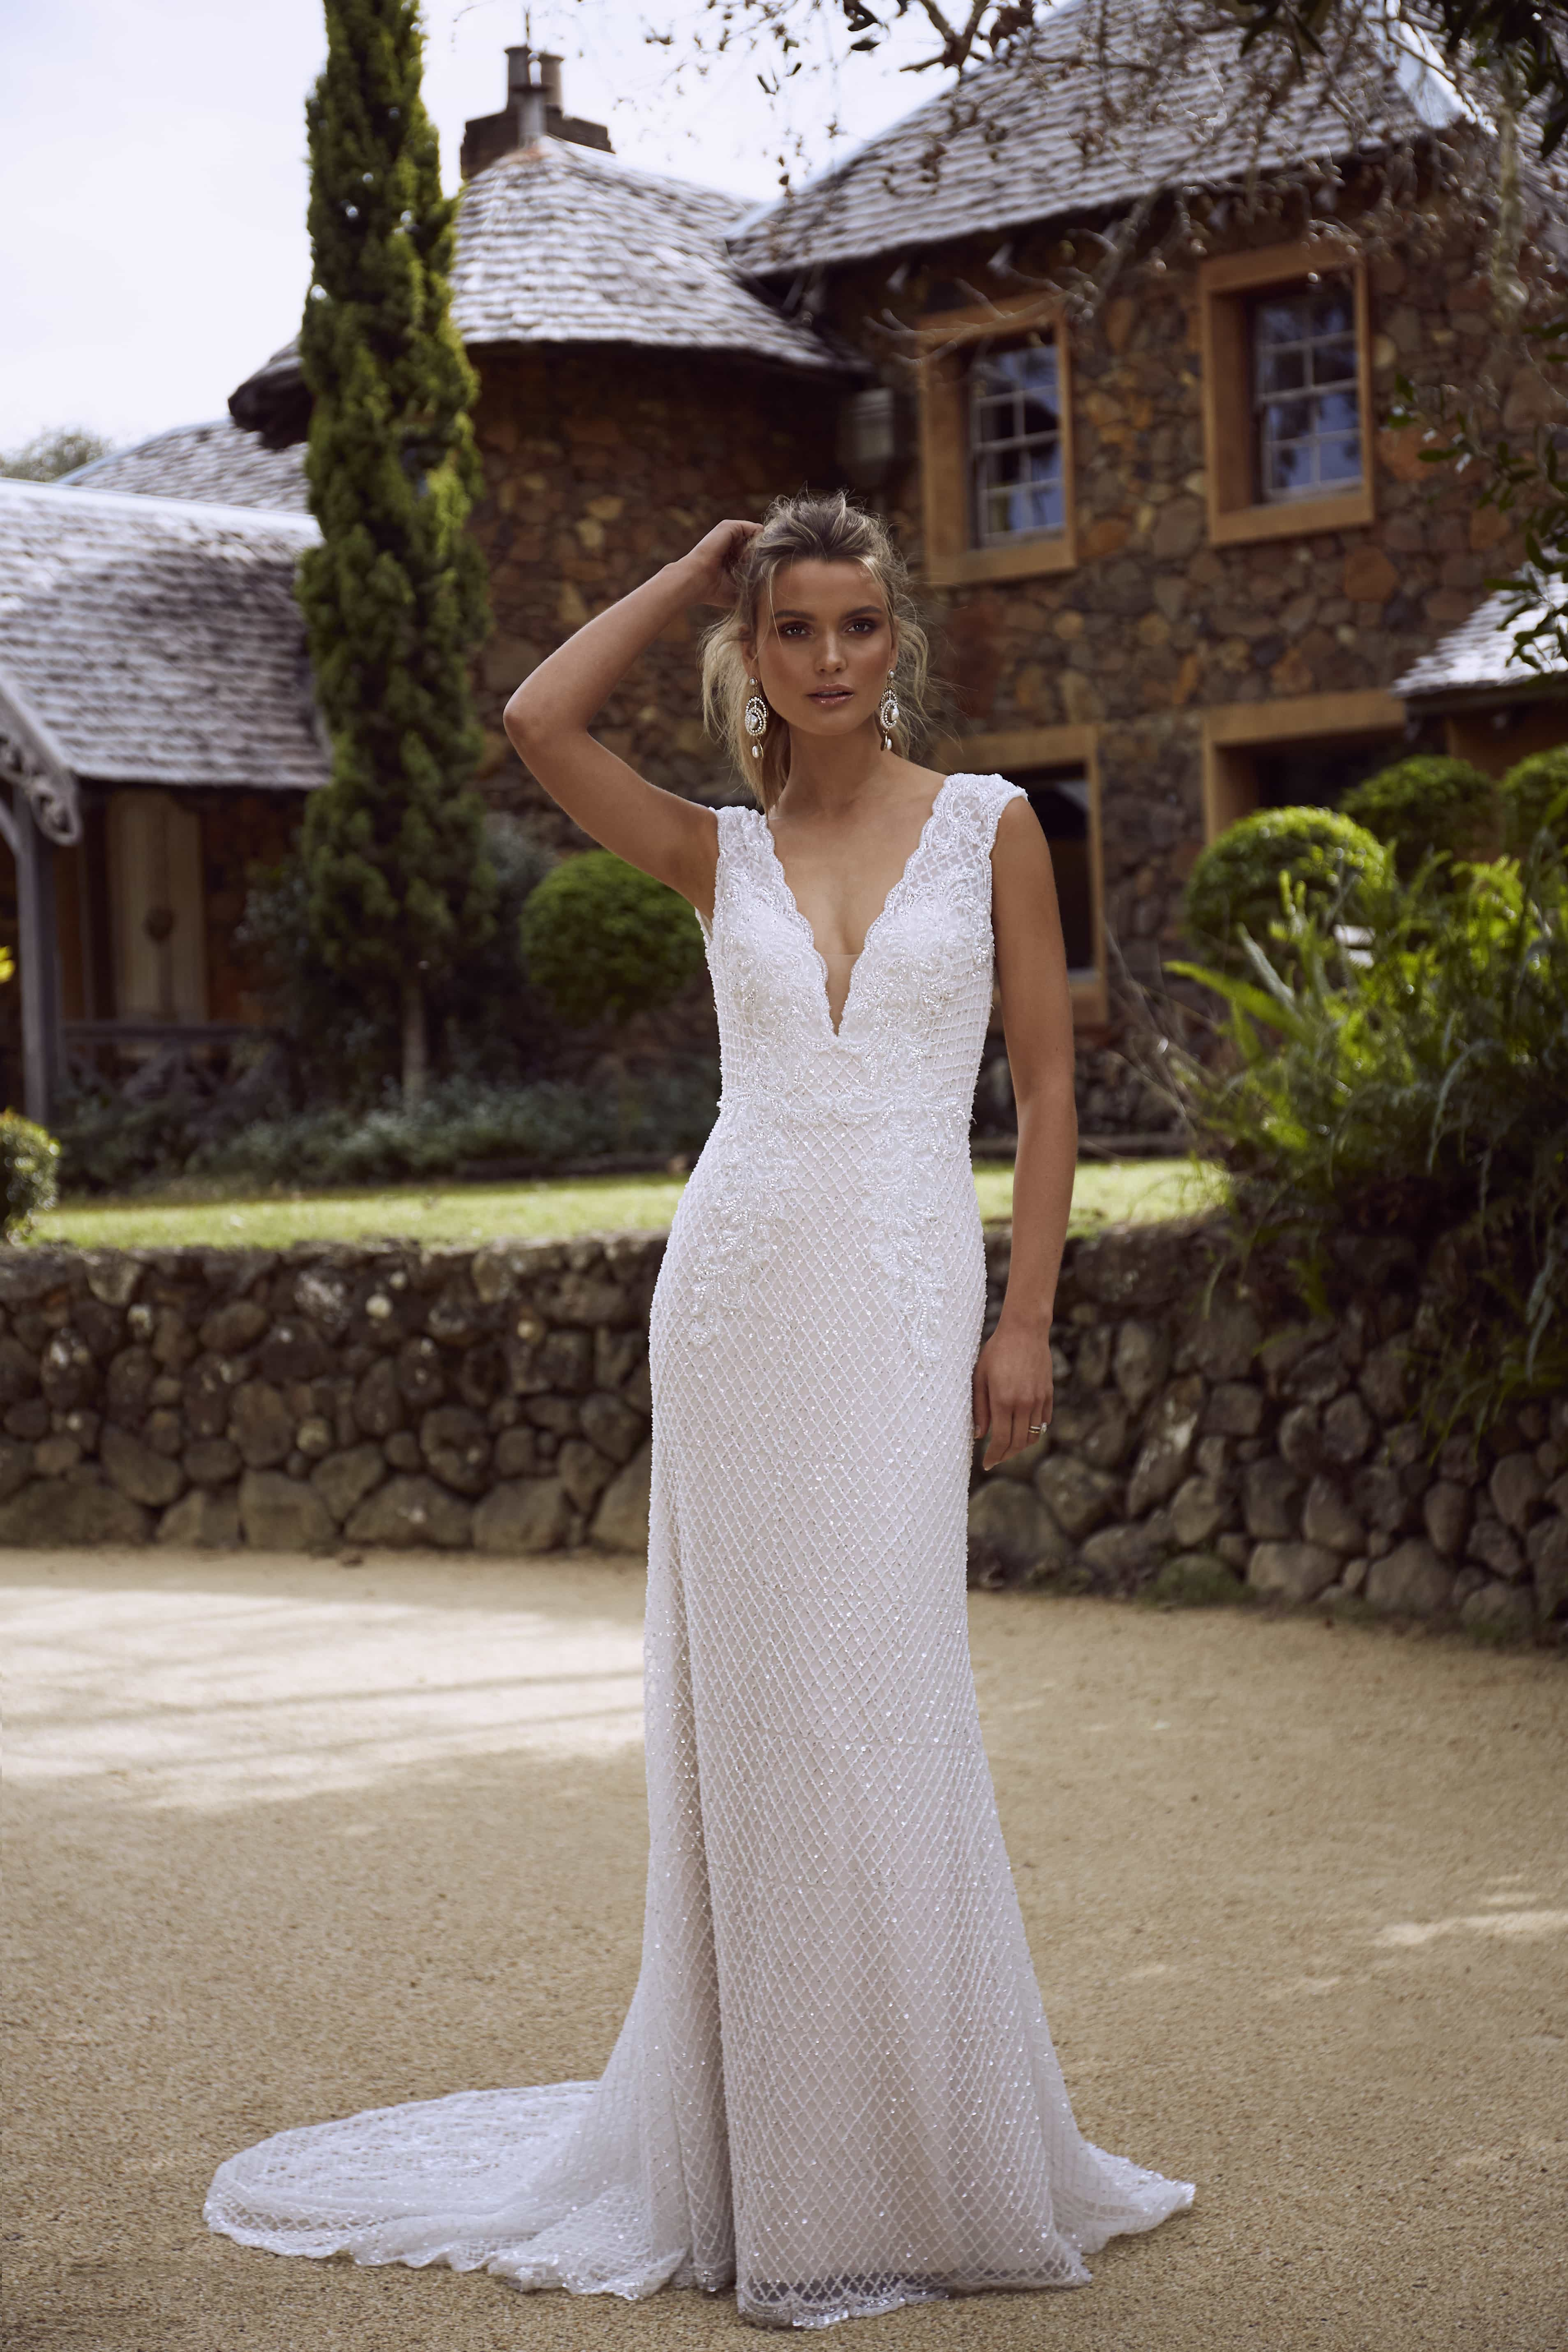 RYLAN ML4218 FULLY BEADED EMBELLISHED V NECK OPEN BACK SHEATH COLUMN WEDDING DRESS MADI LANE LUXE LUV BRIDAL 3